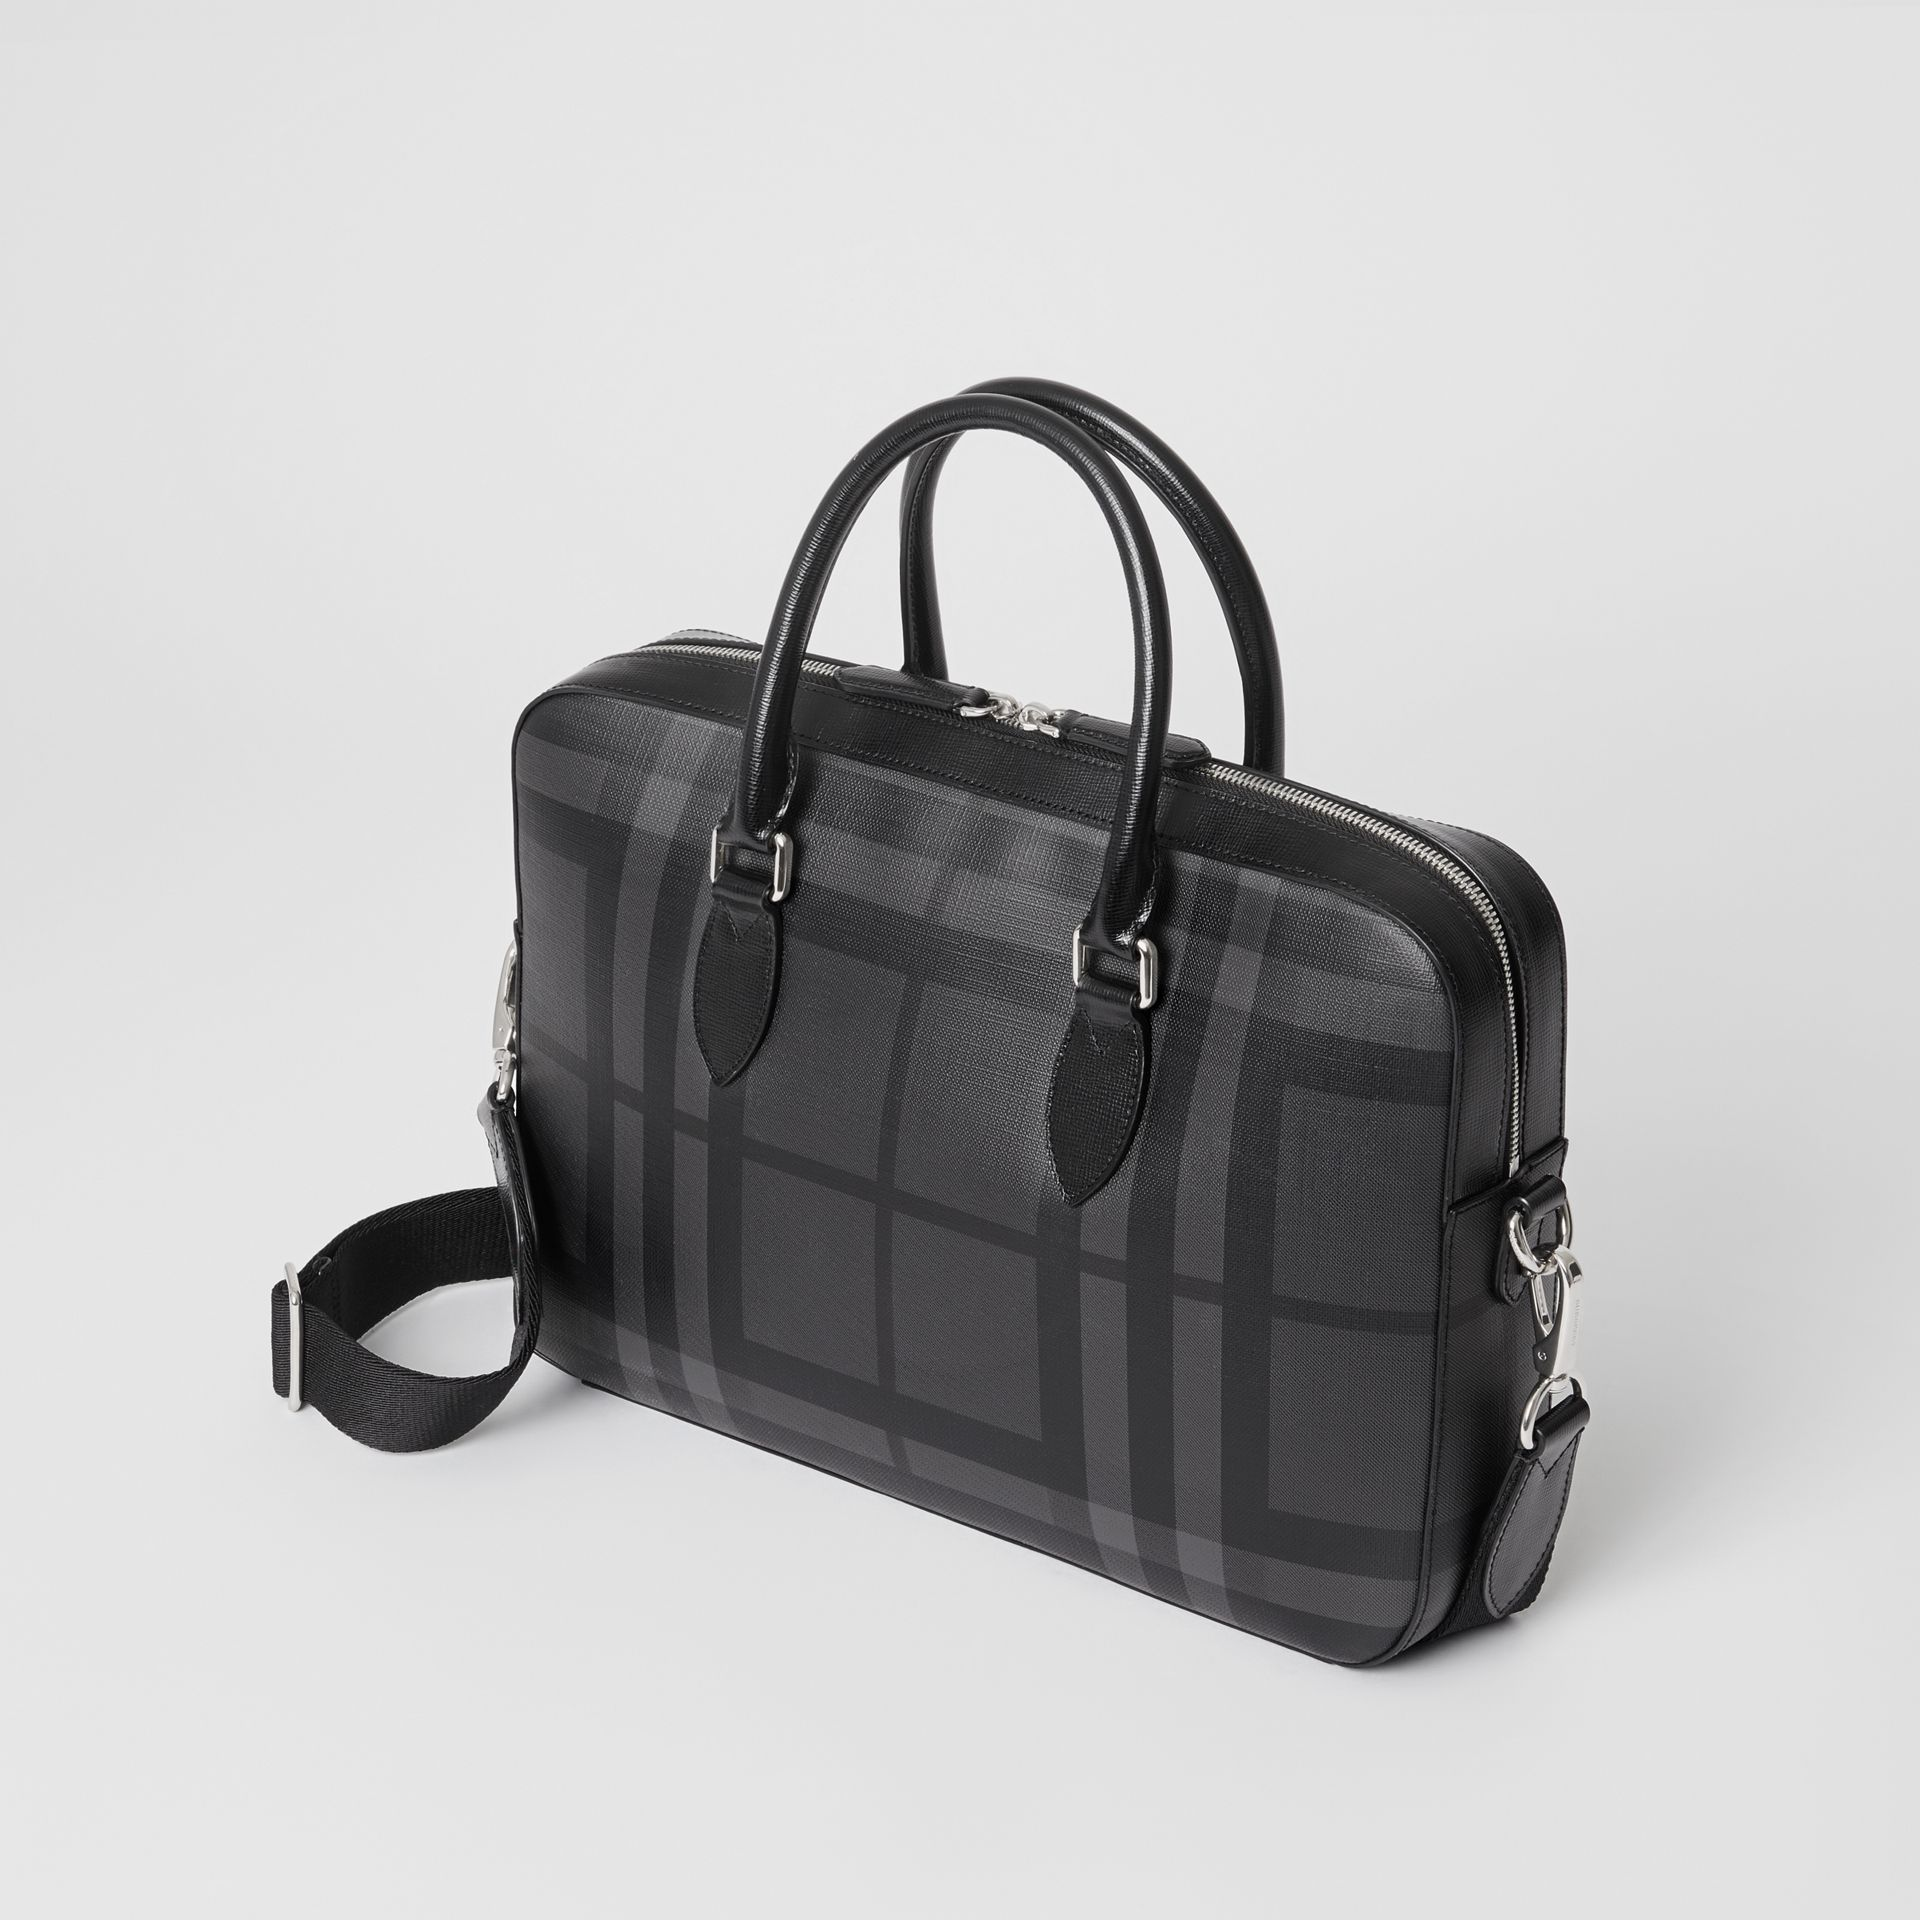 Sac The Barrow fin avec motif London check (Anthracite/noir) - Homme | Burberry Canada - photo de la galerie 4